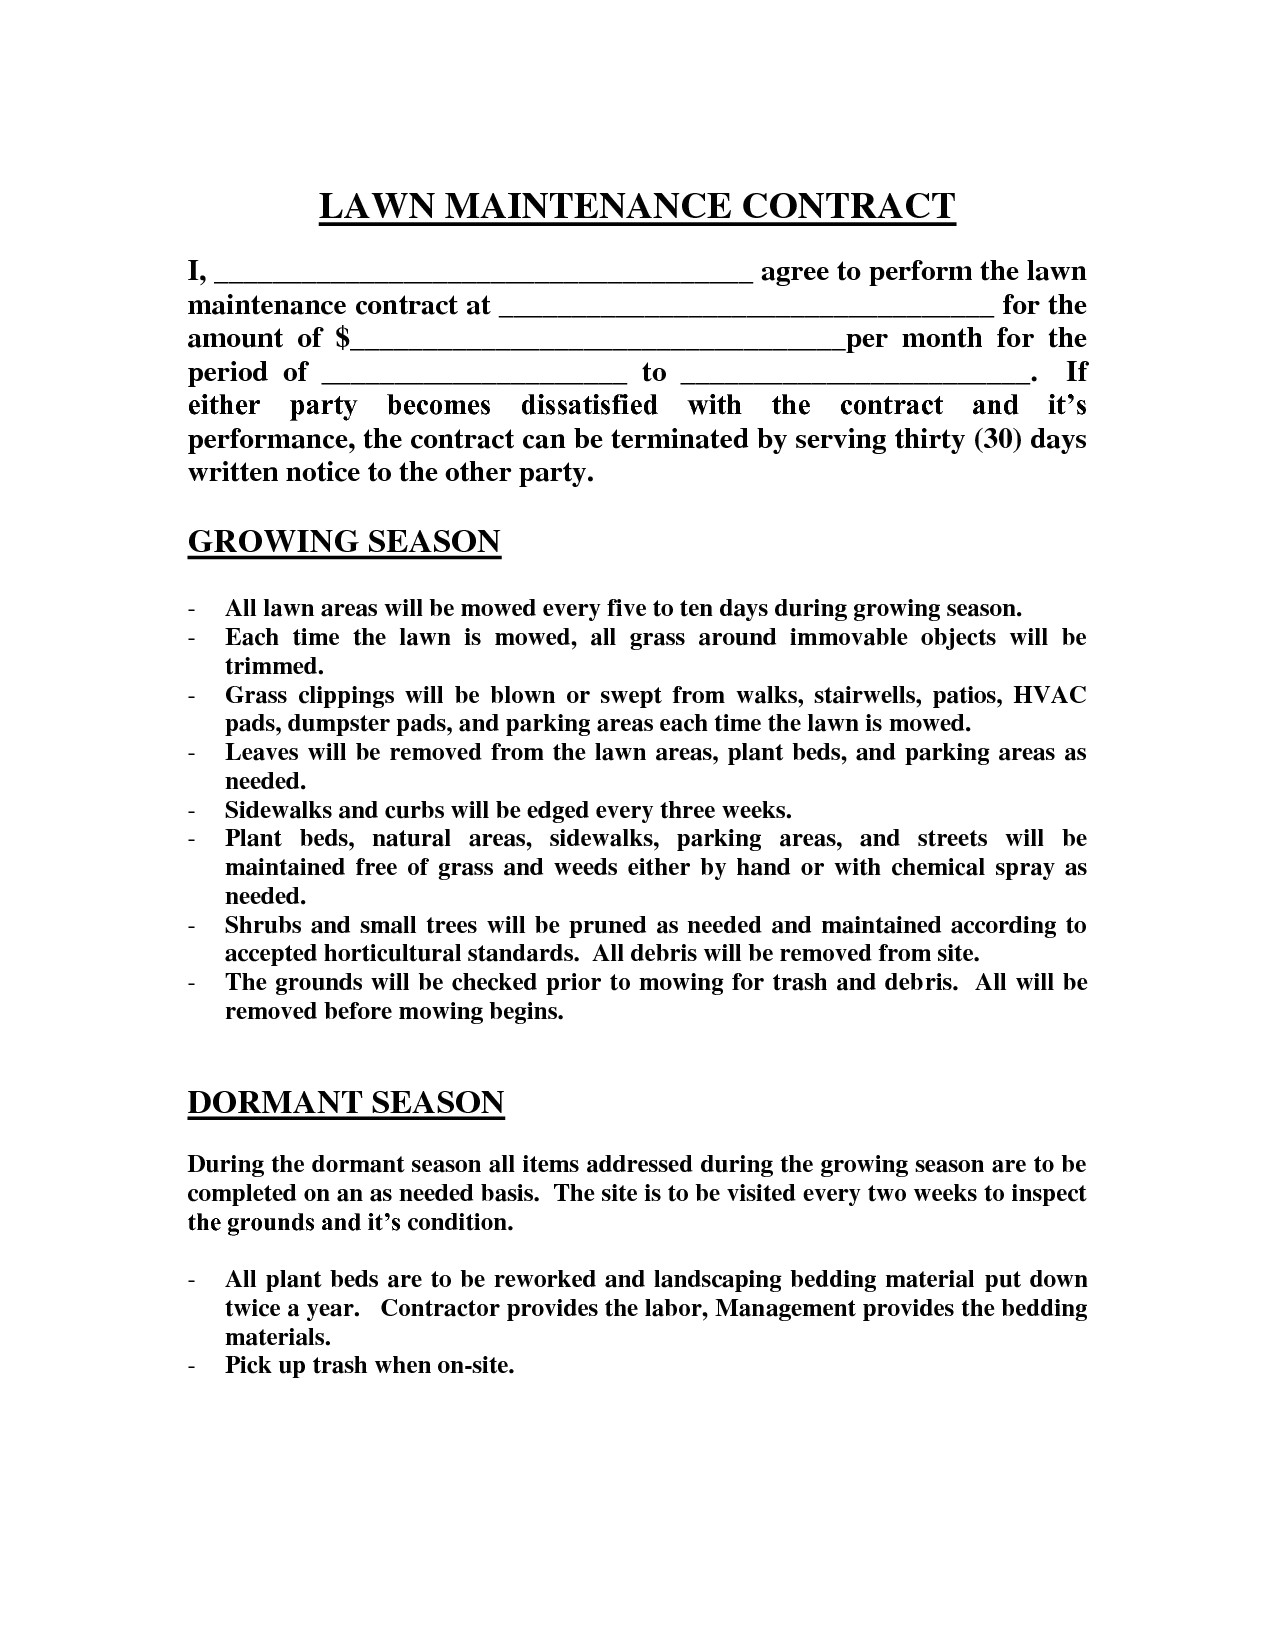 Gardening Contract Template Lawn Maintenance Contract Images Lawn Maintenance